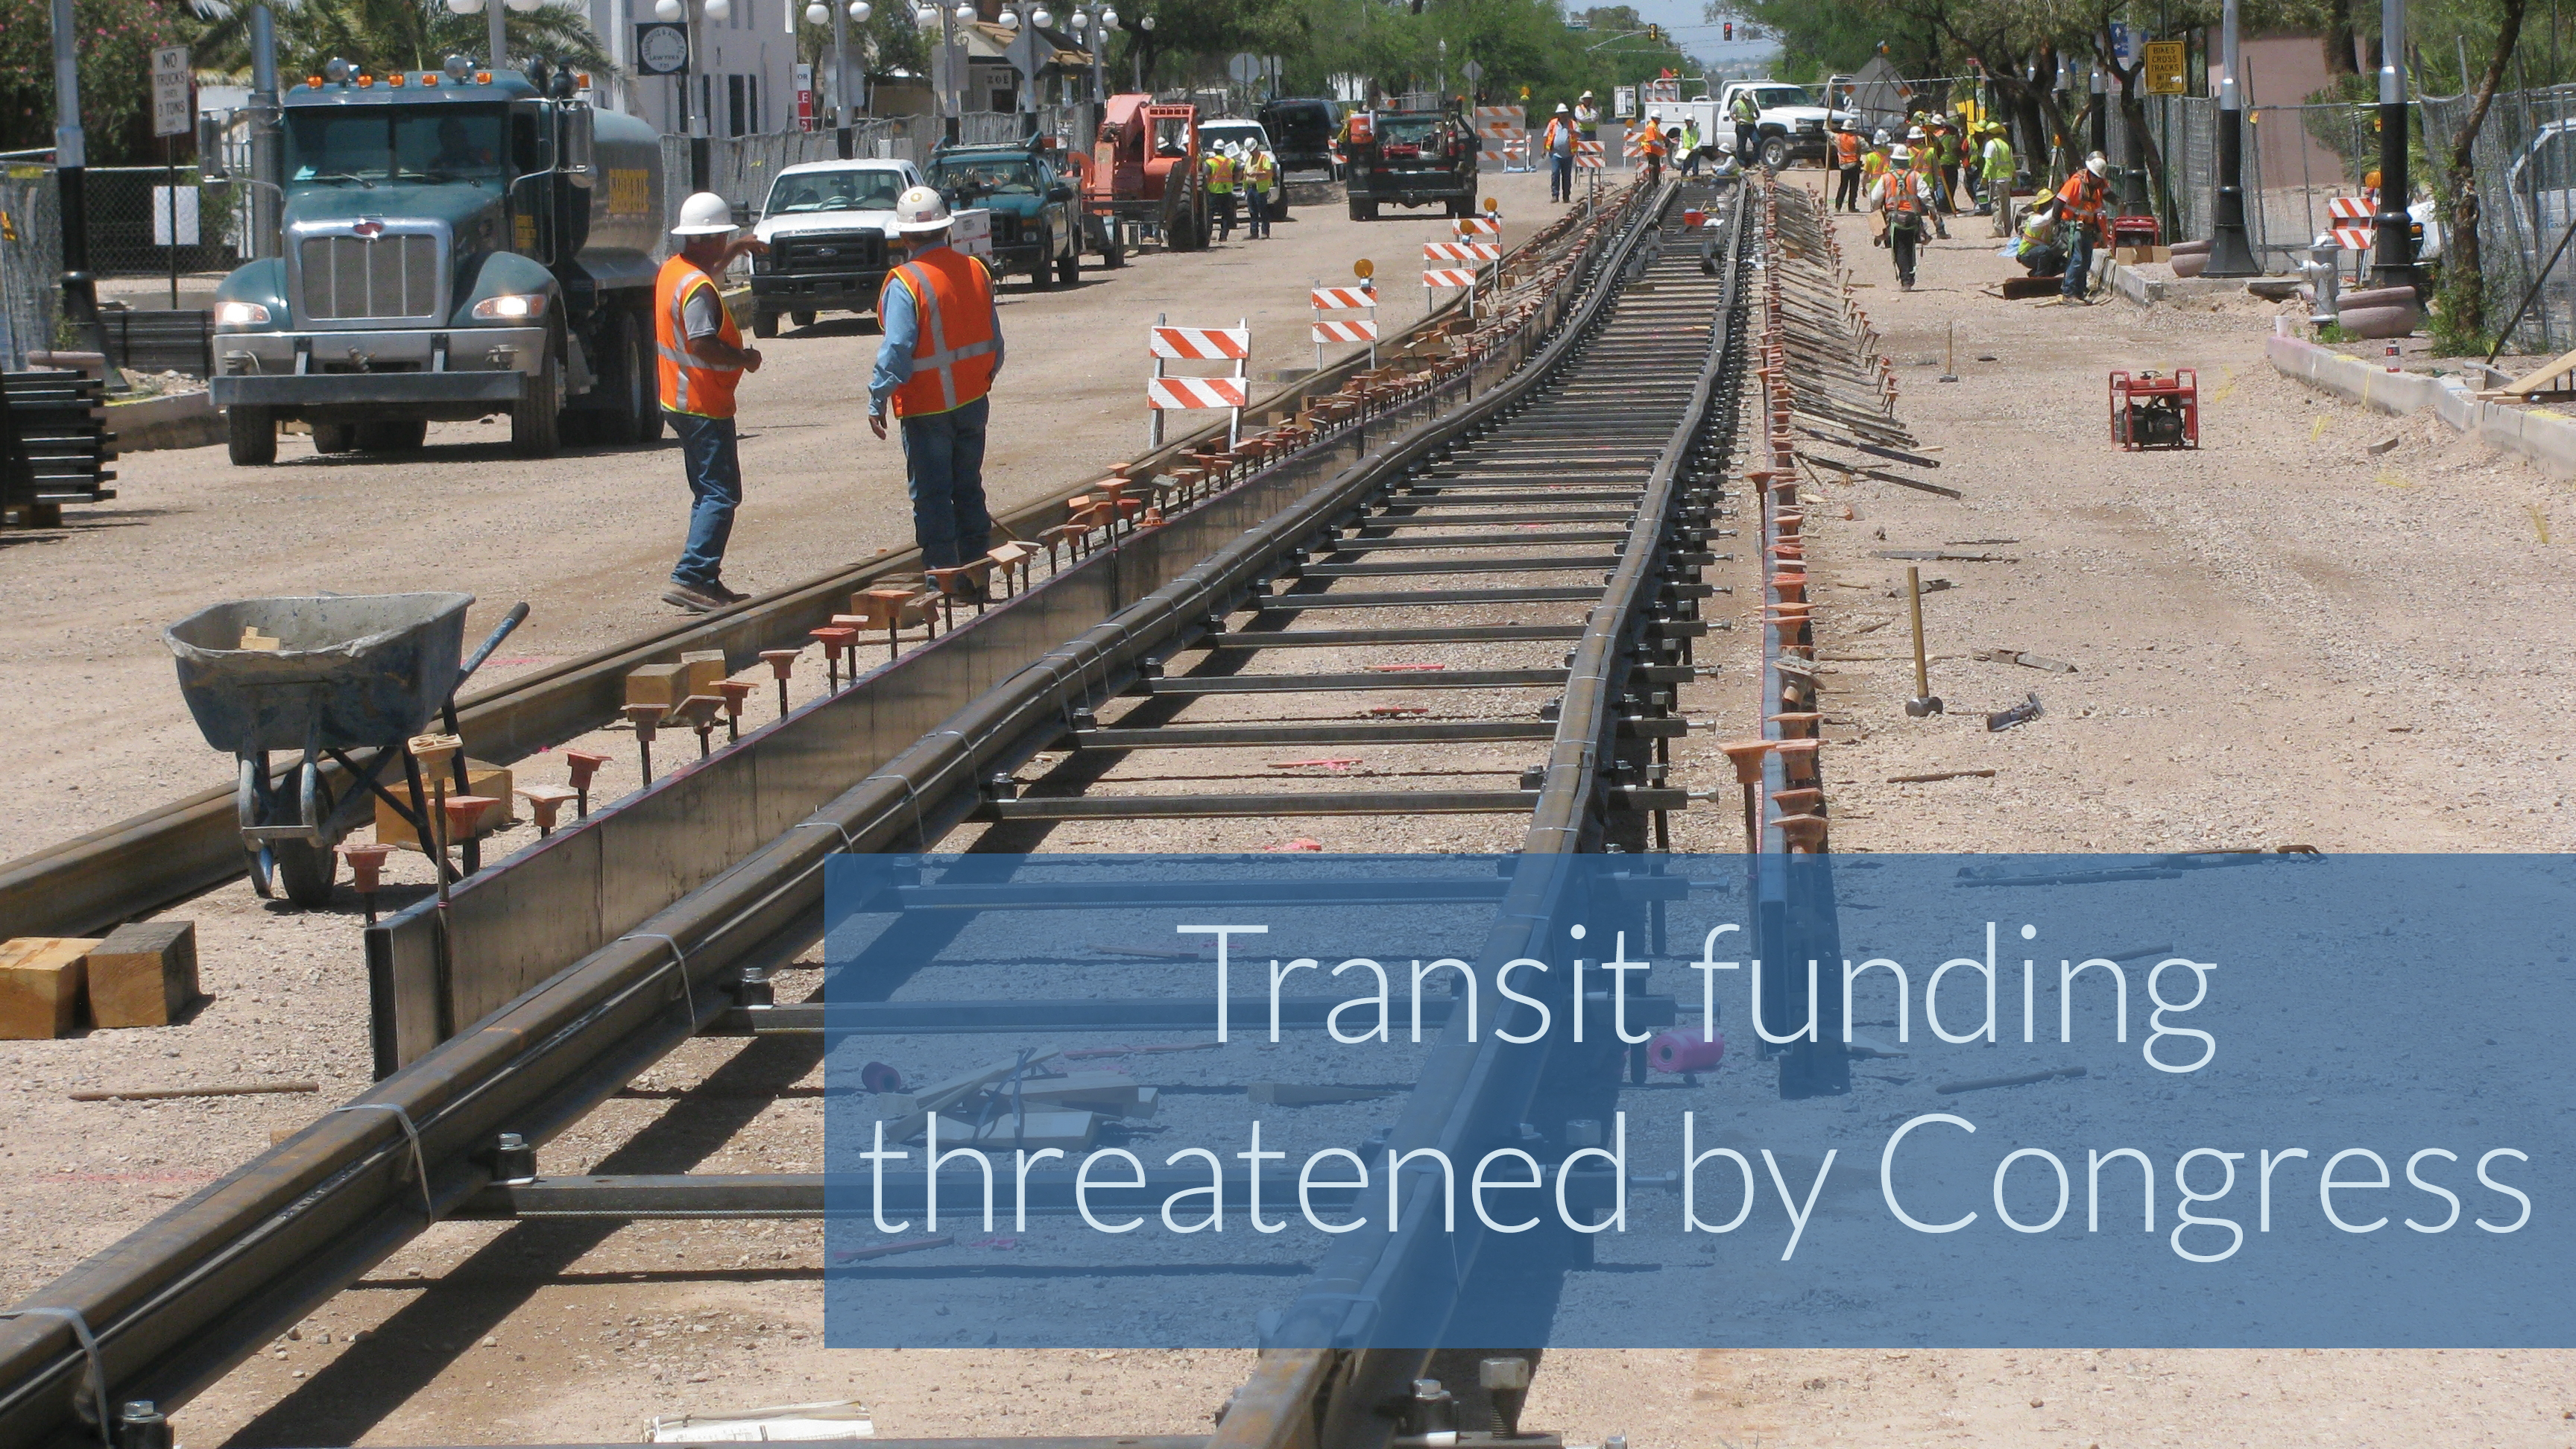 Federal transit funding threatened